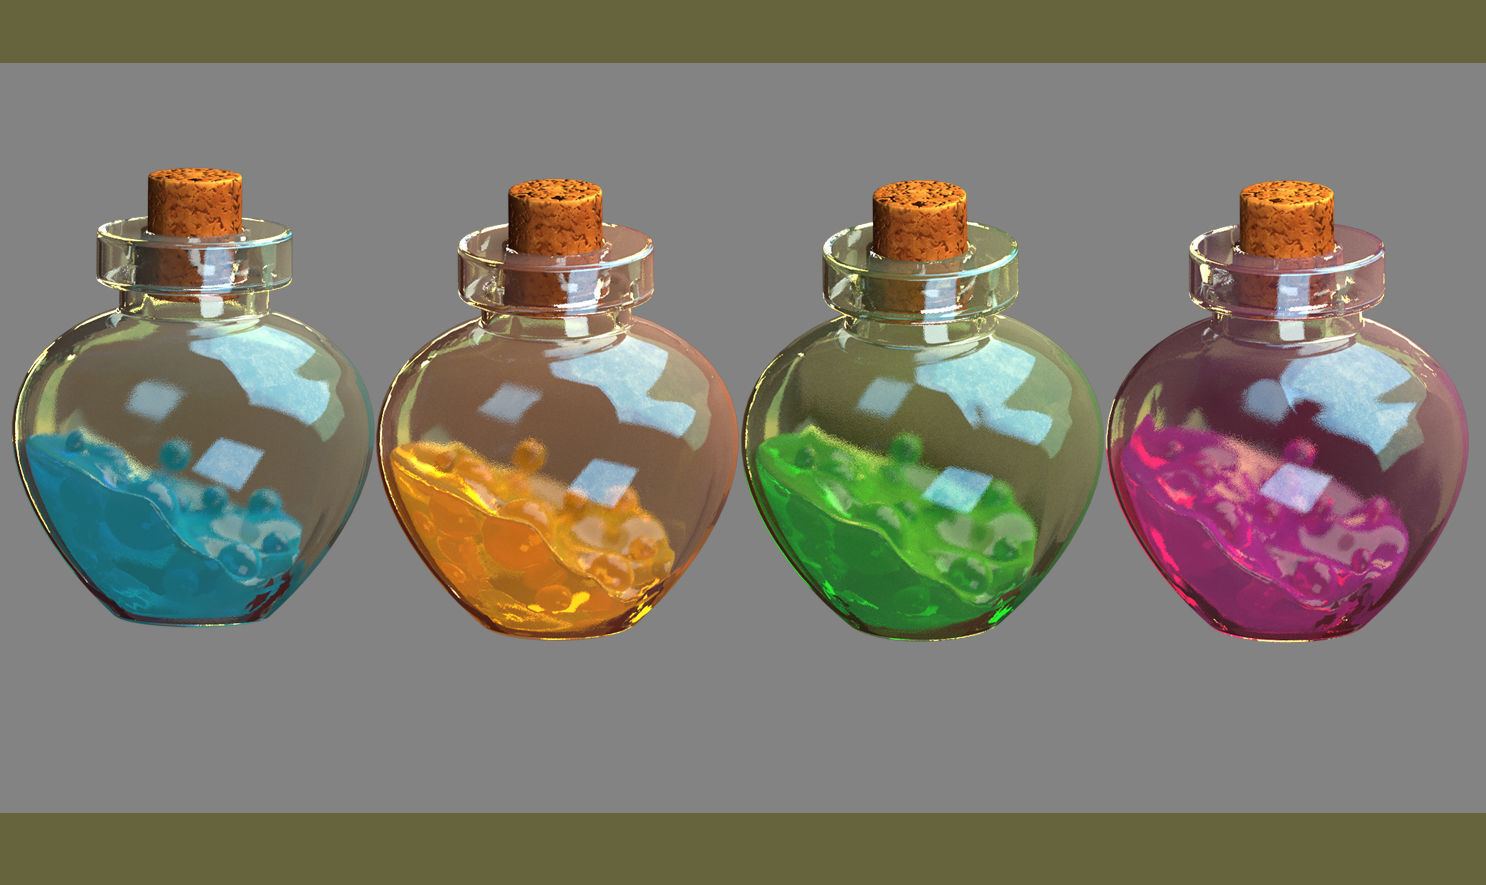 potion bottles jelly material